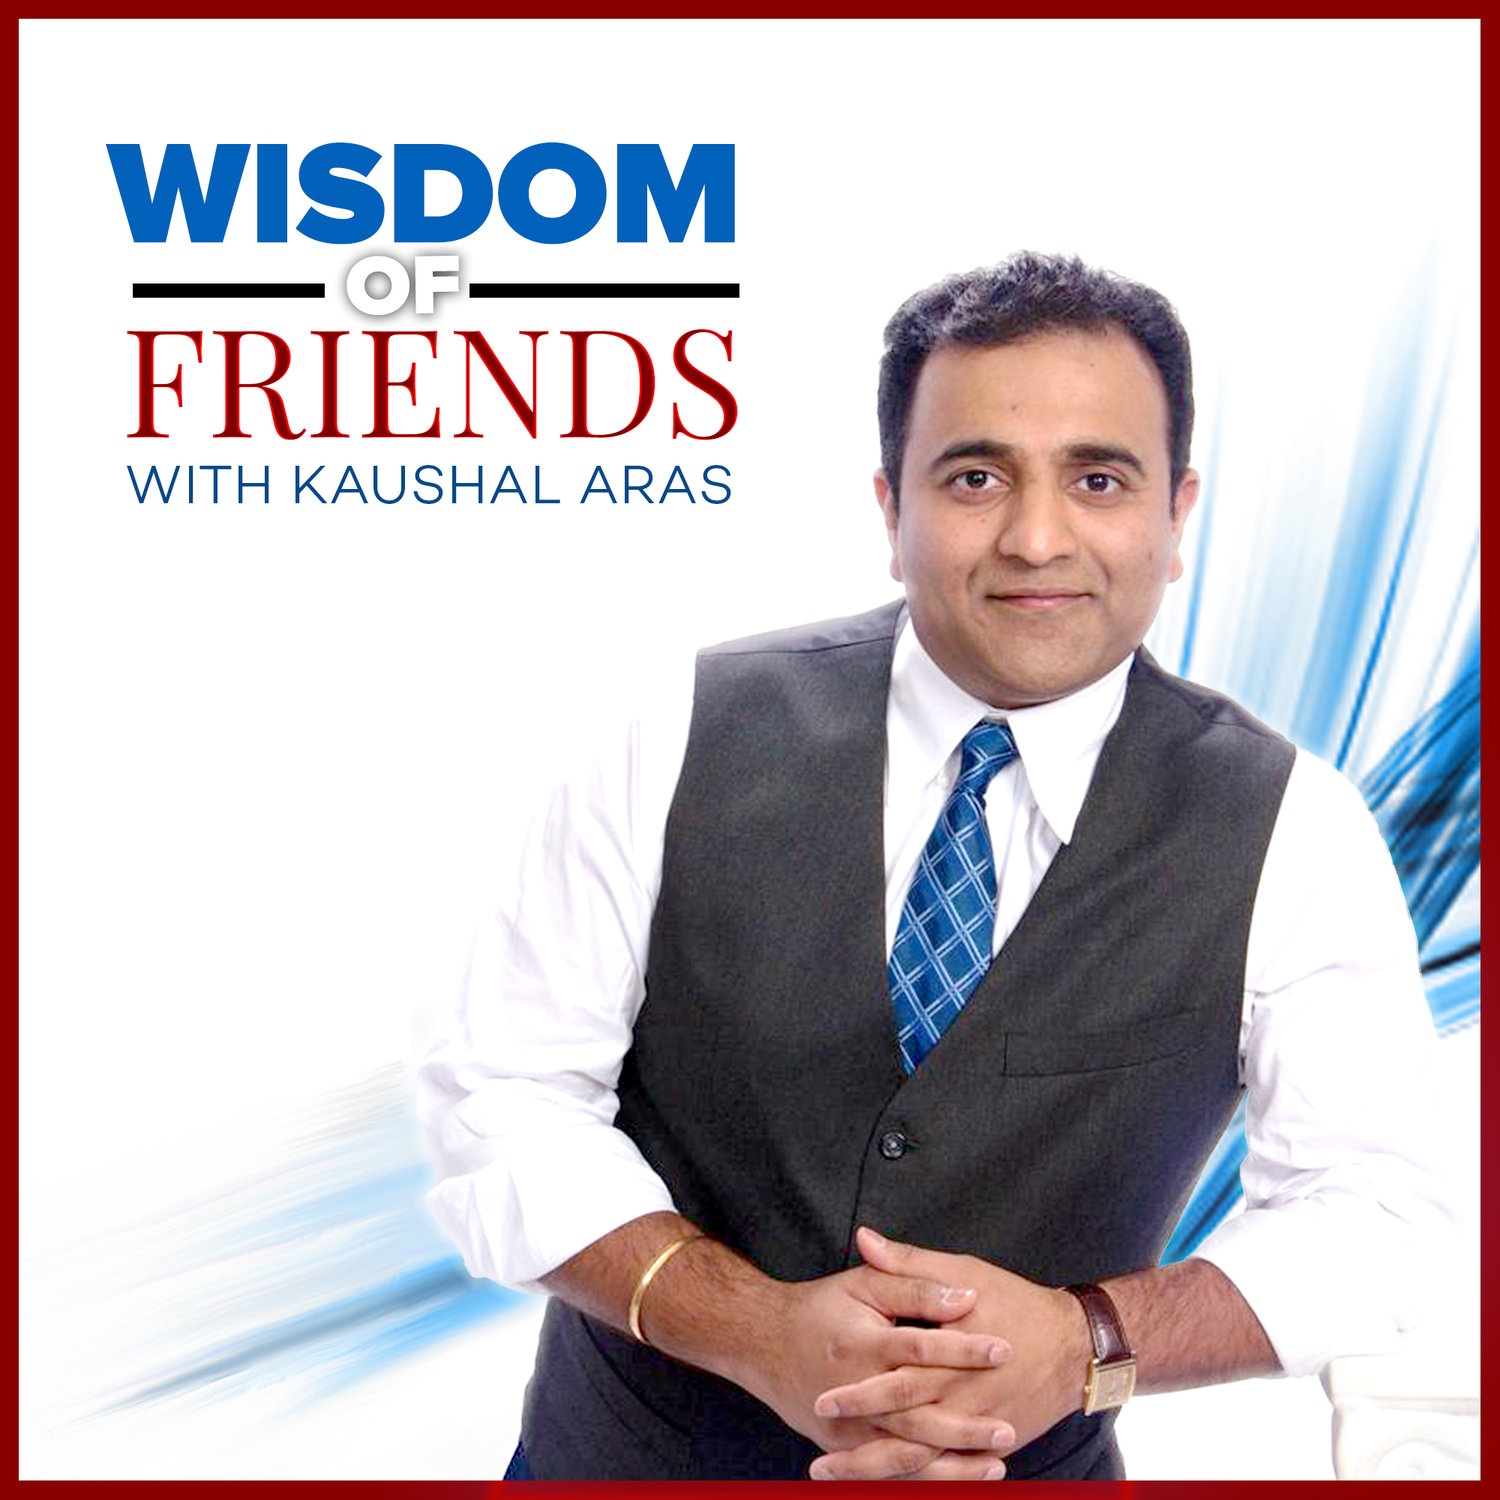 Wisdom of Friends with Kal Aras